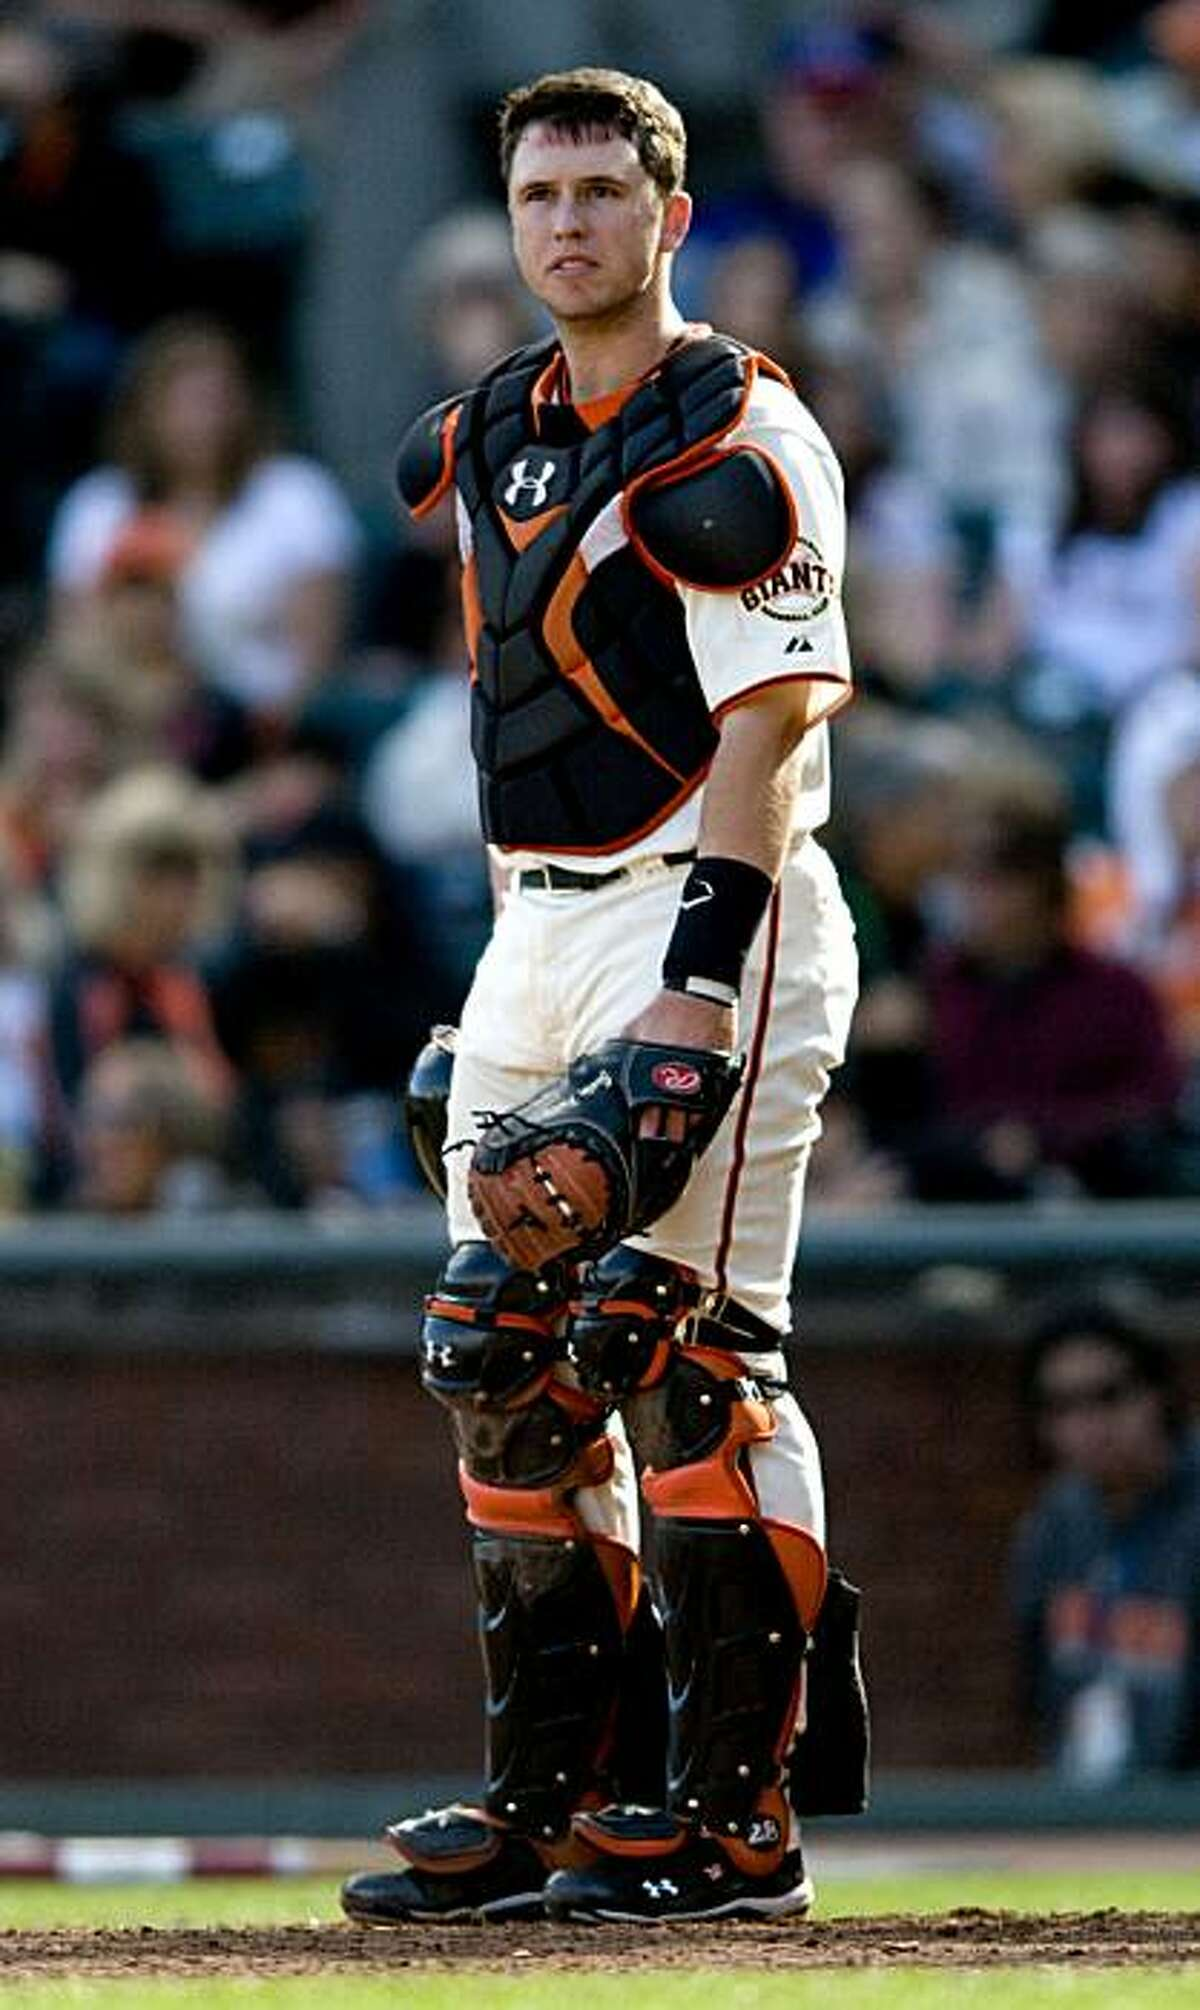 Buster Posey takes off his mask in between pitches as the San Francisco Giants take on the Milwaukee Brewers at AT&T Park in San Francisco, Calif., on Sunday, September 19, 2010.